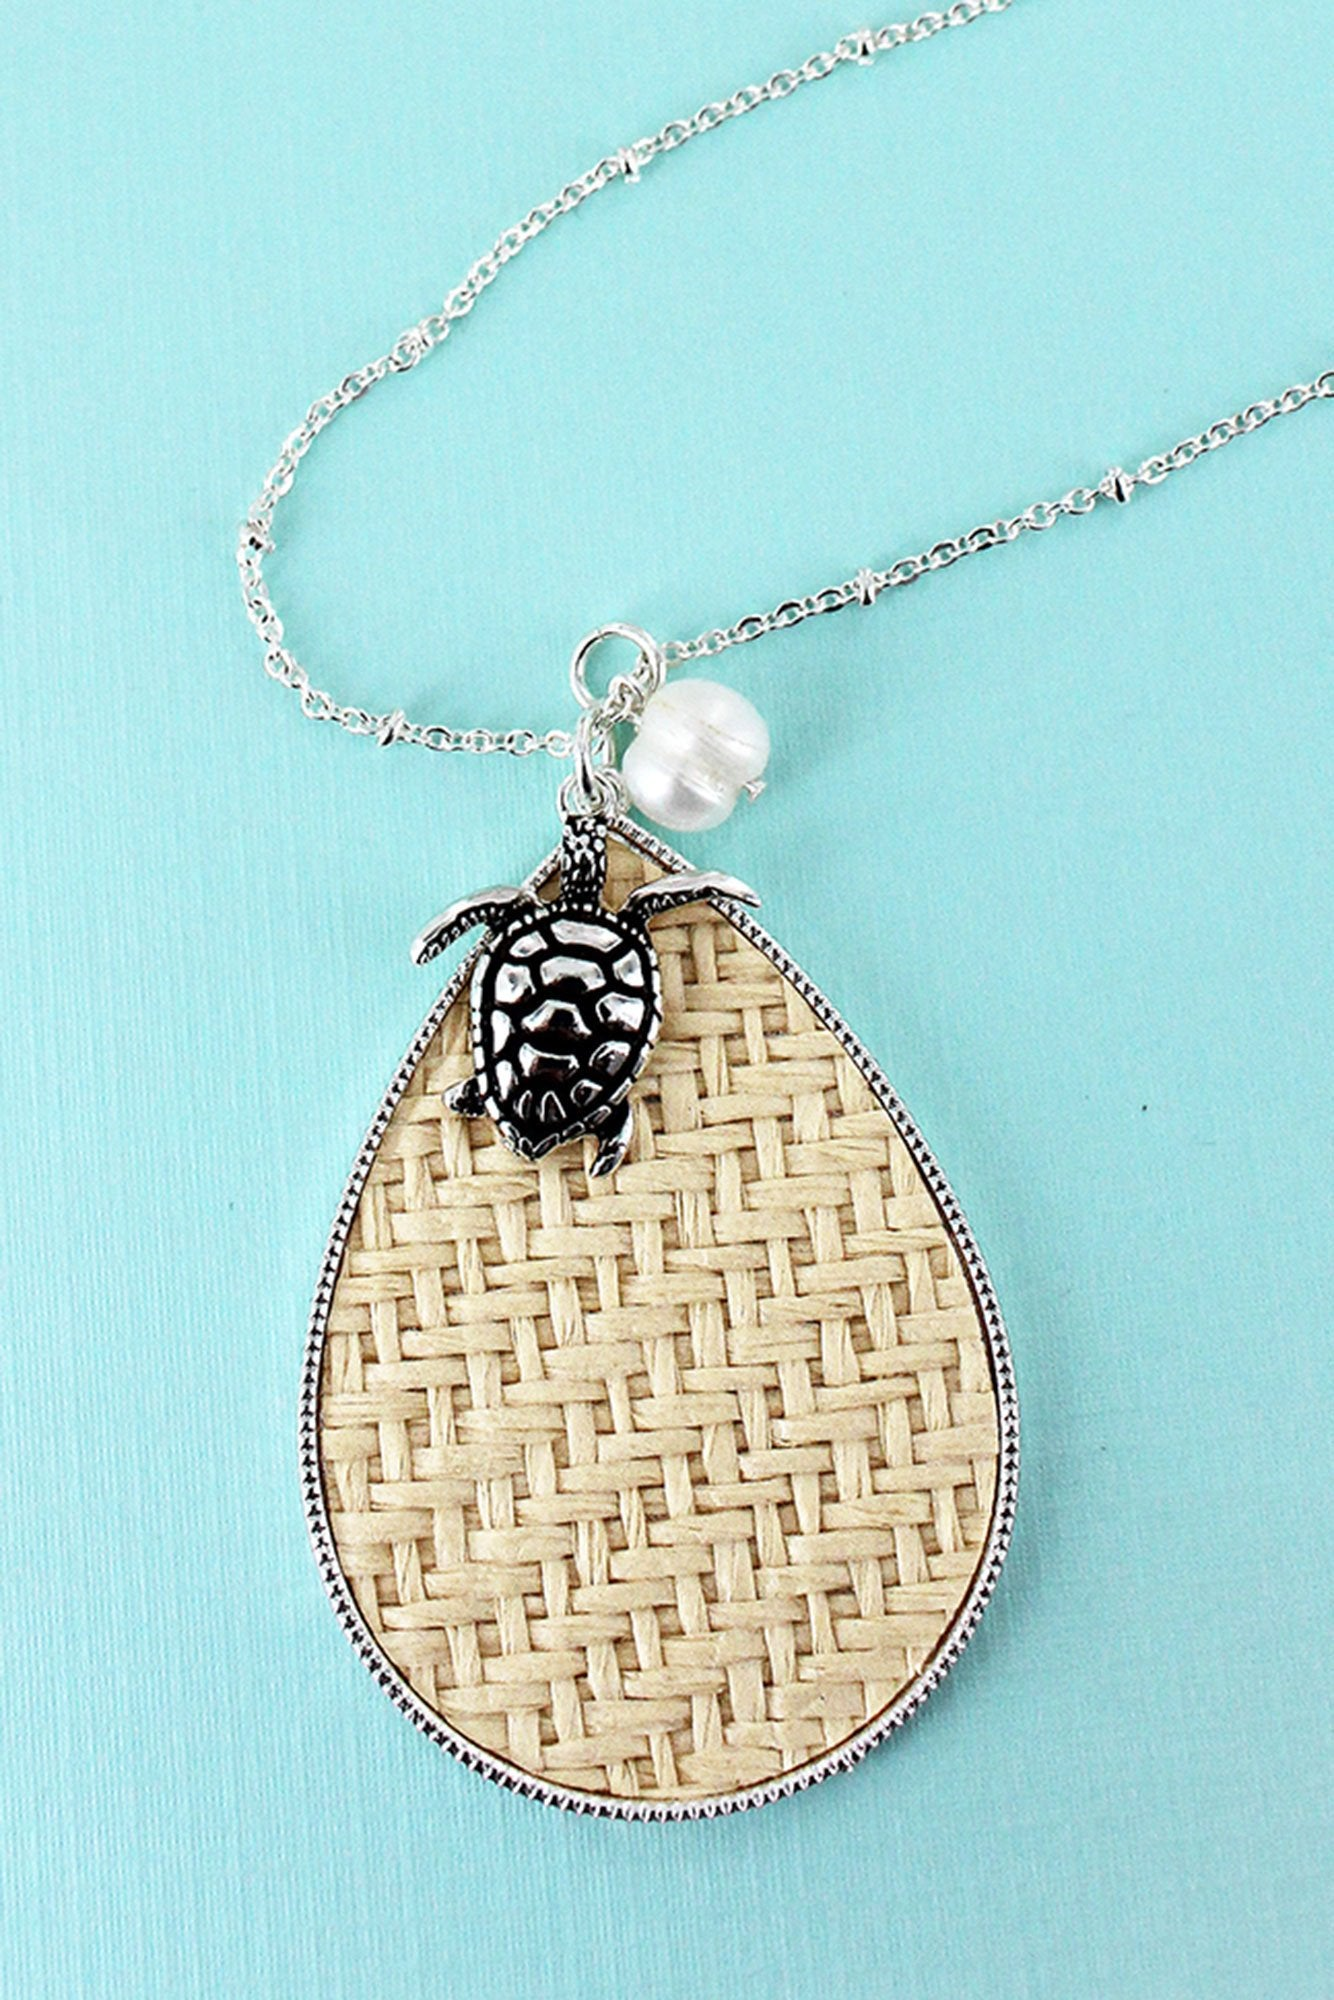 Ivory Rattan Teardrop with Silvertone Turtle Pendant Necklace